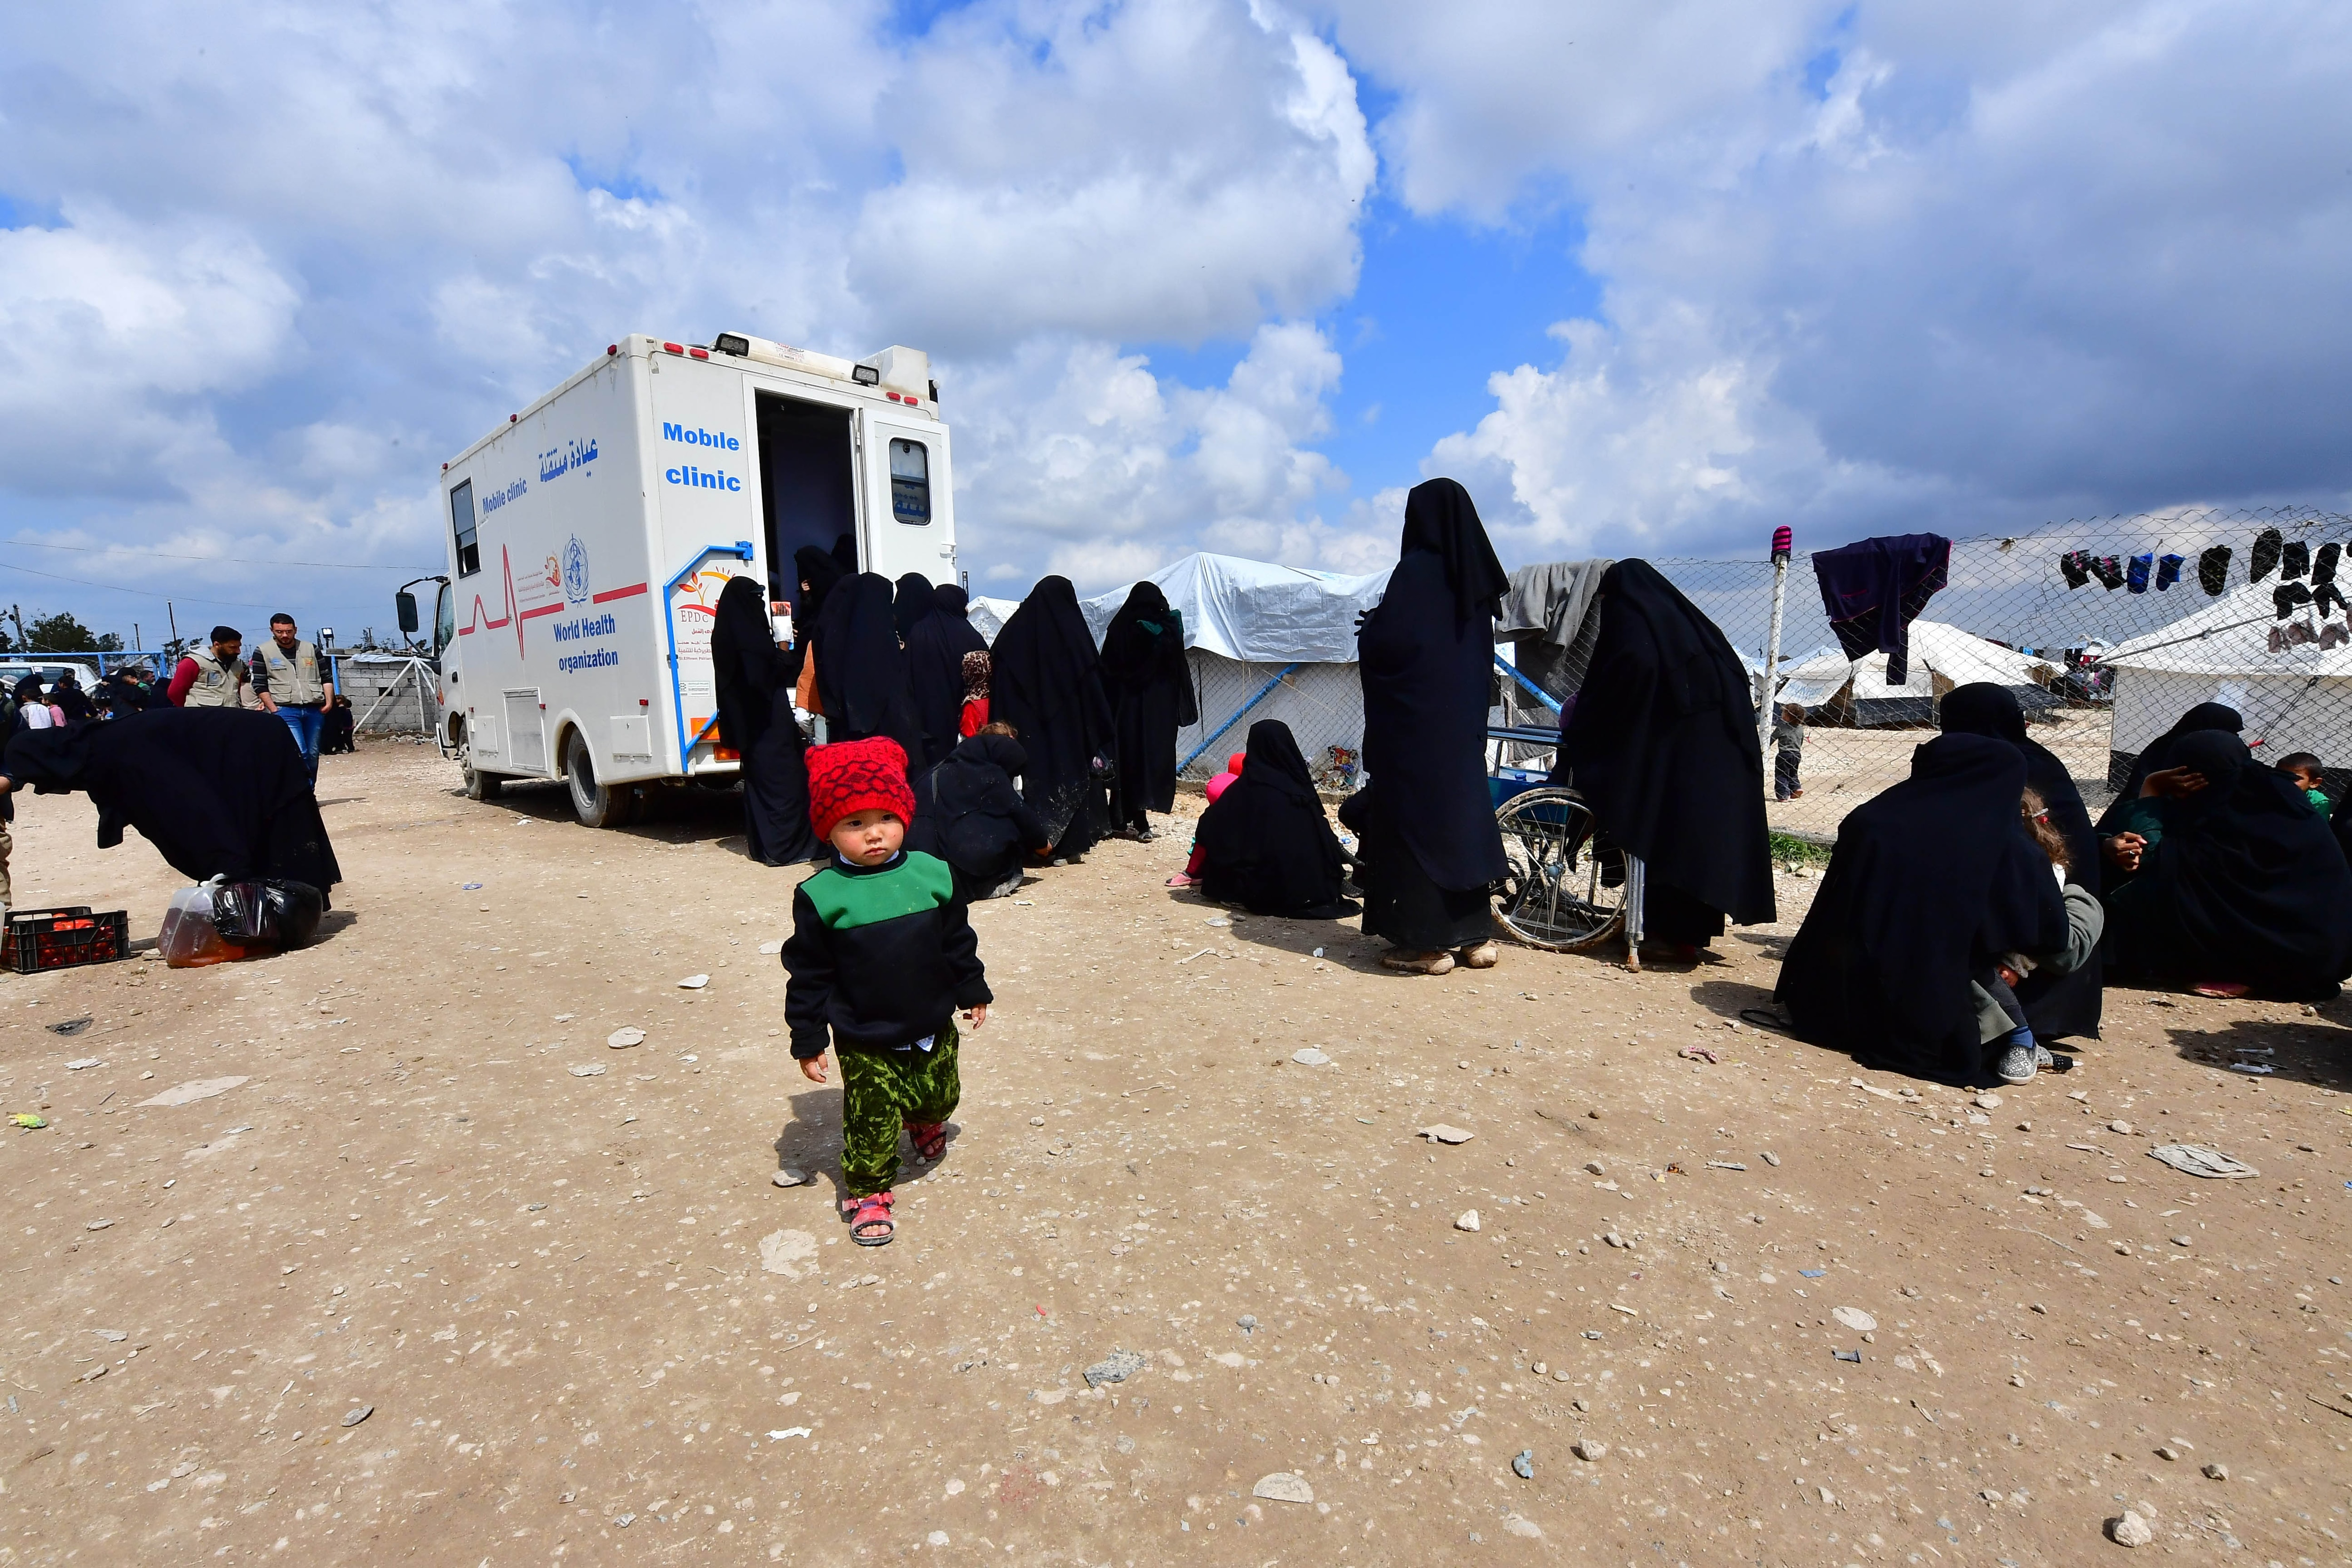 Veiled women living in al-Hol camp which houses relatives of Islamic State (IS) group members, queue to receive medical aid.